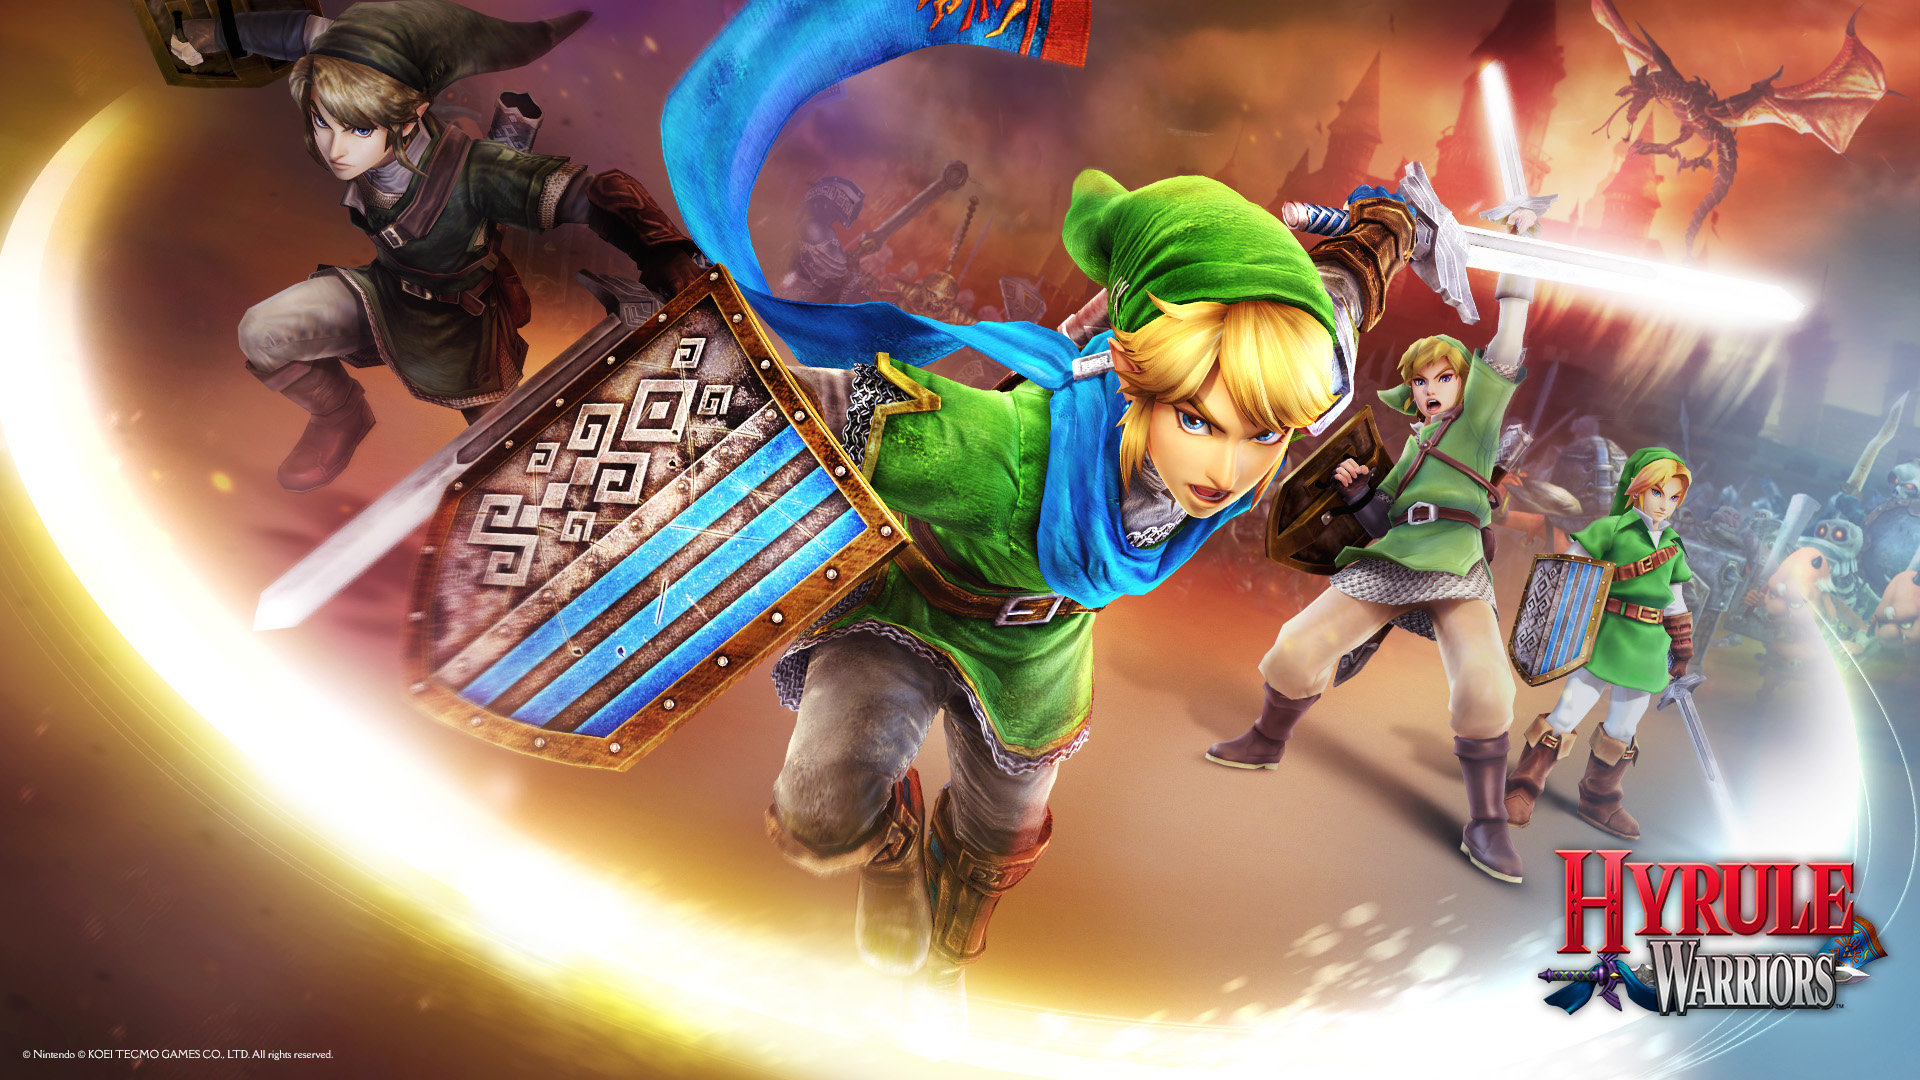 Hyrule Warriors Pics, Video Game Collection